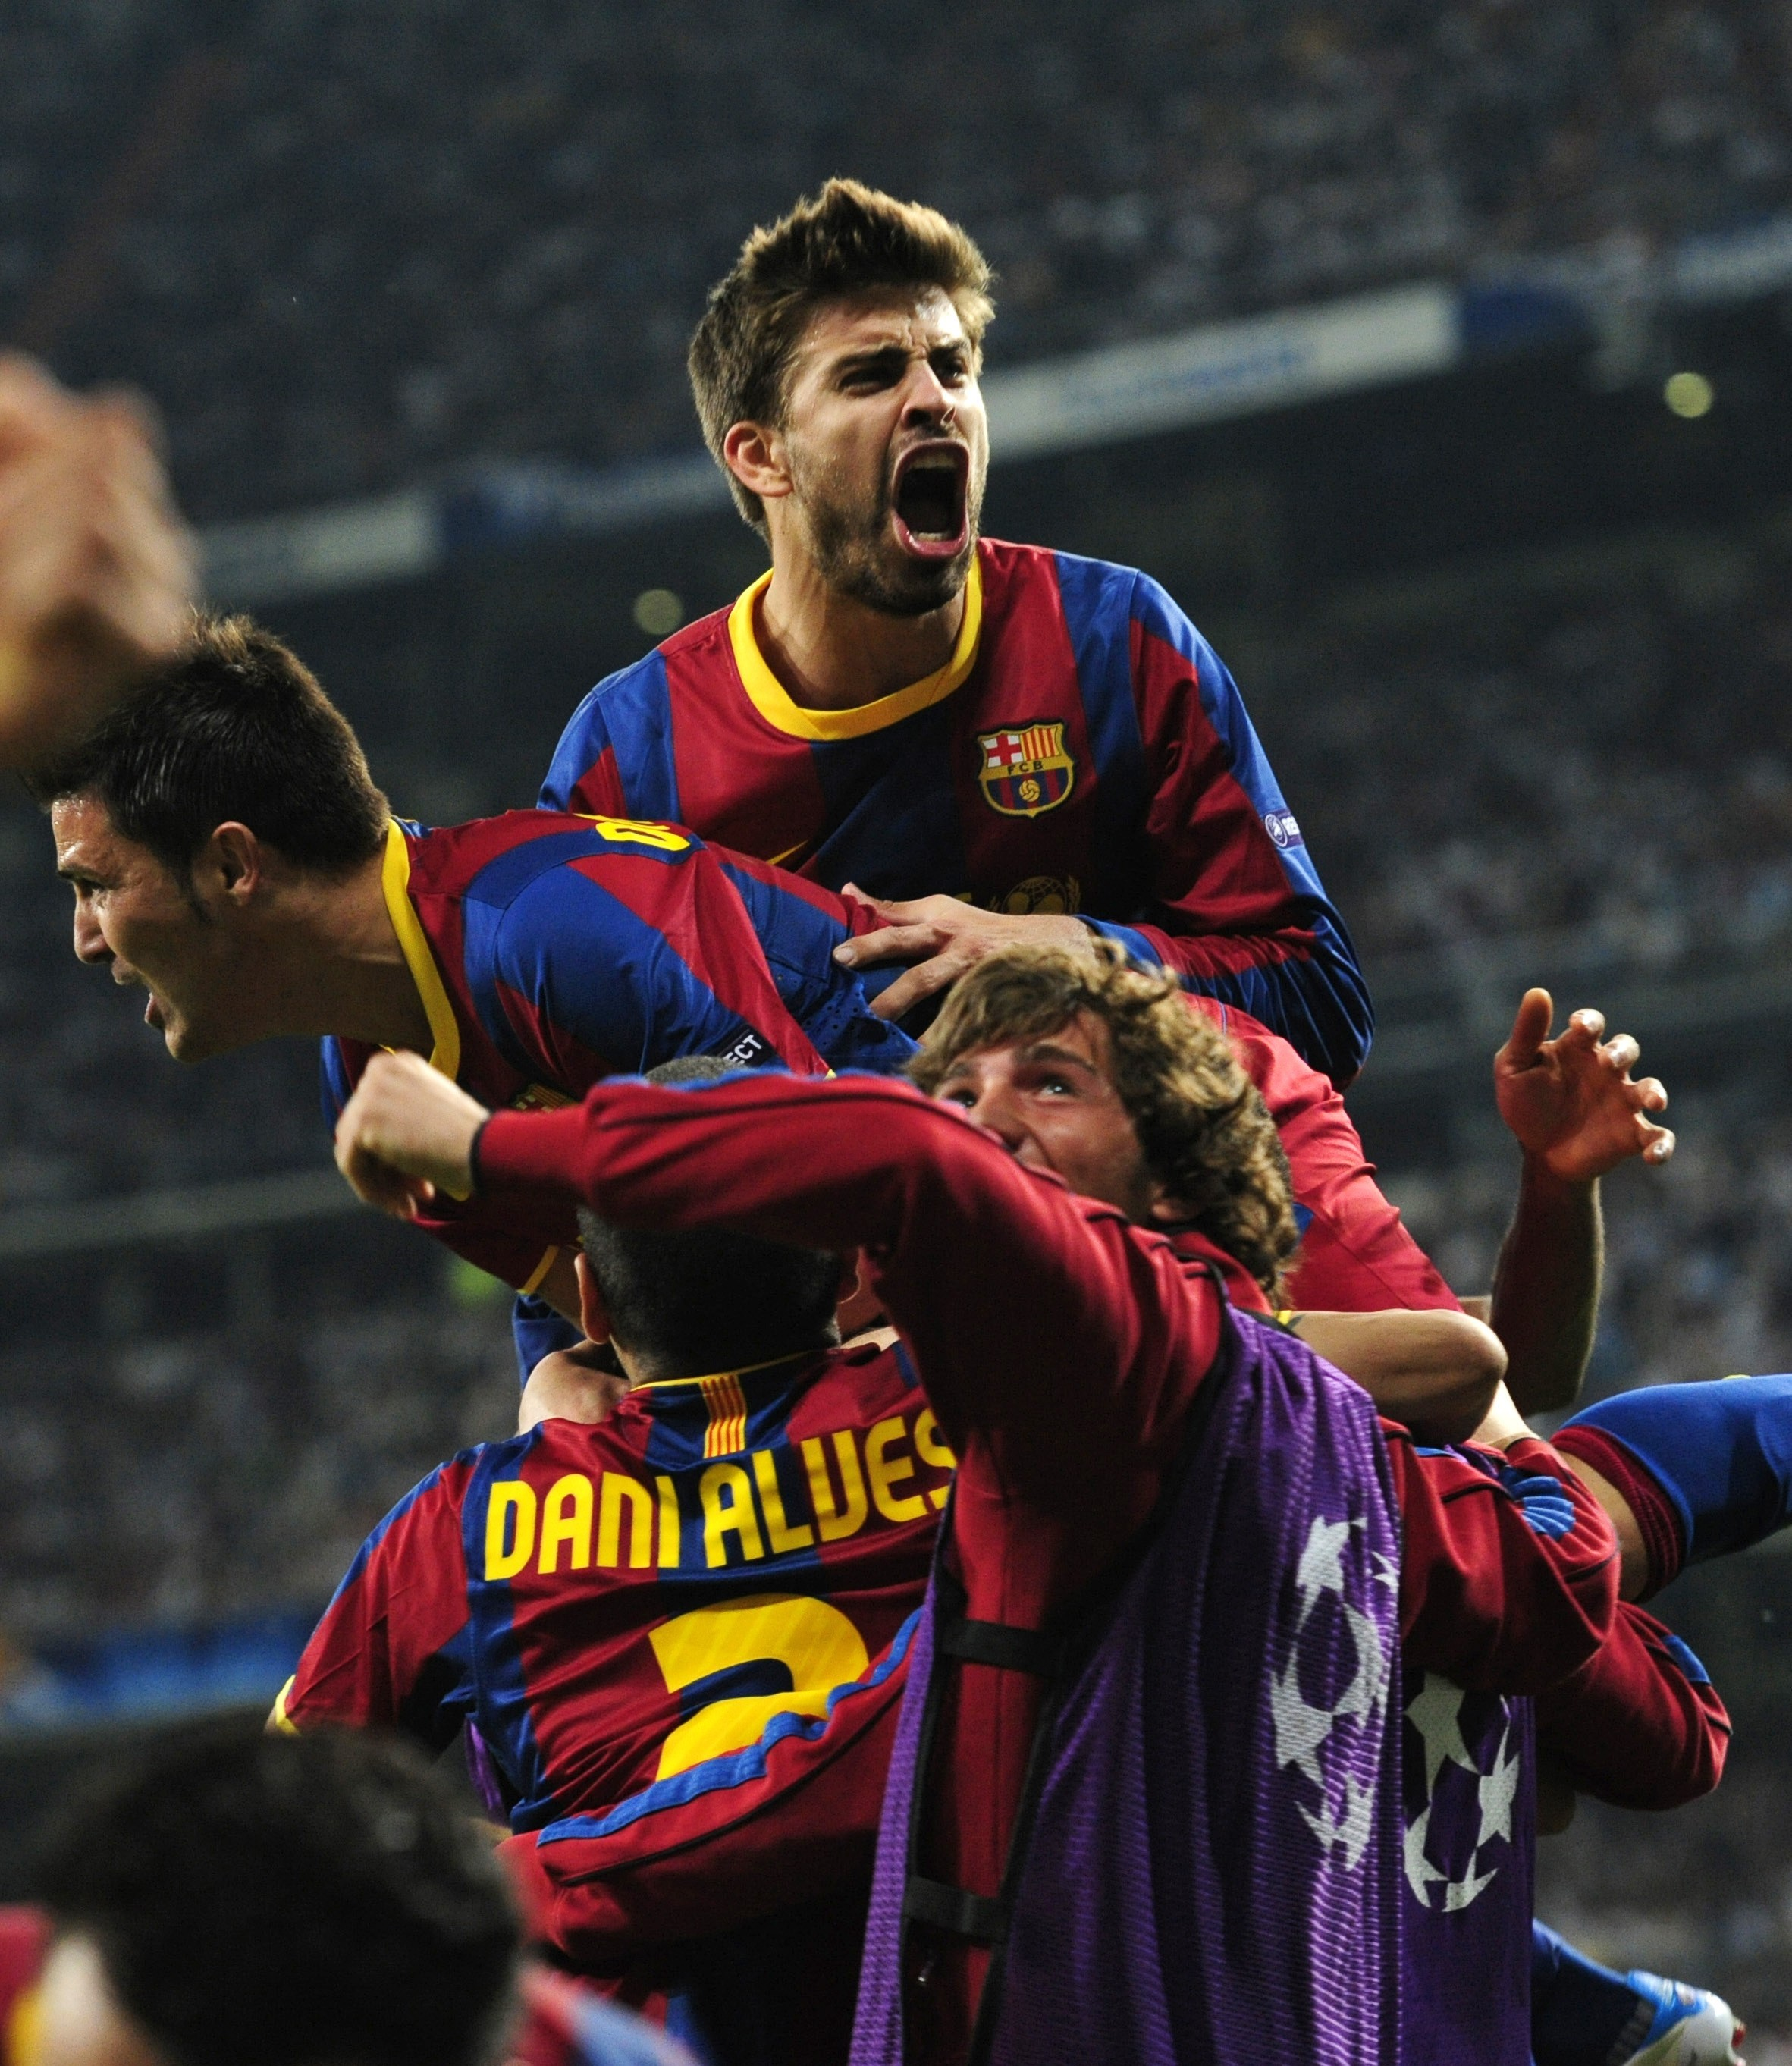 Champions League David Villa FC Barcelona HD Wallpaper